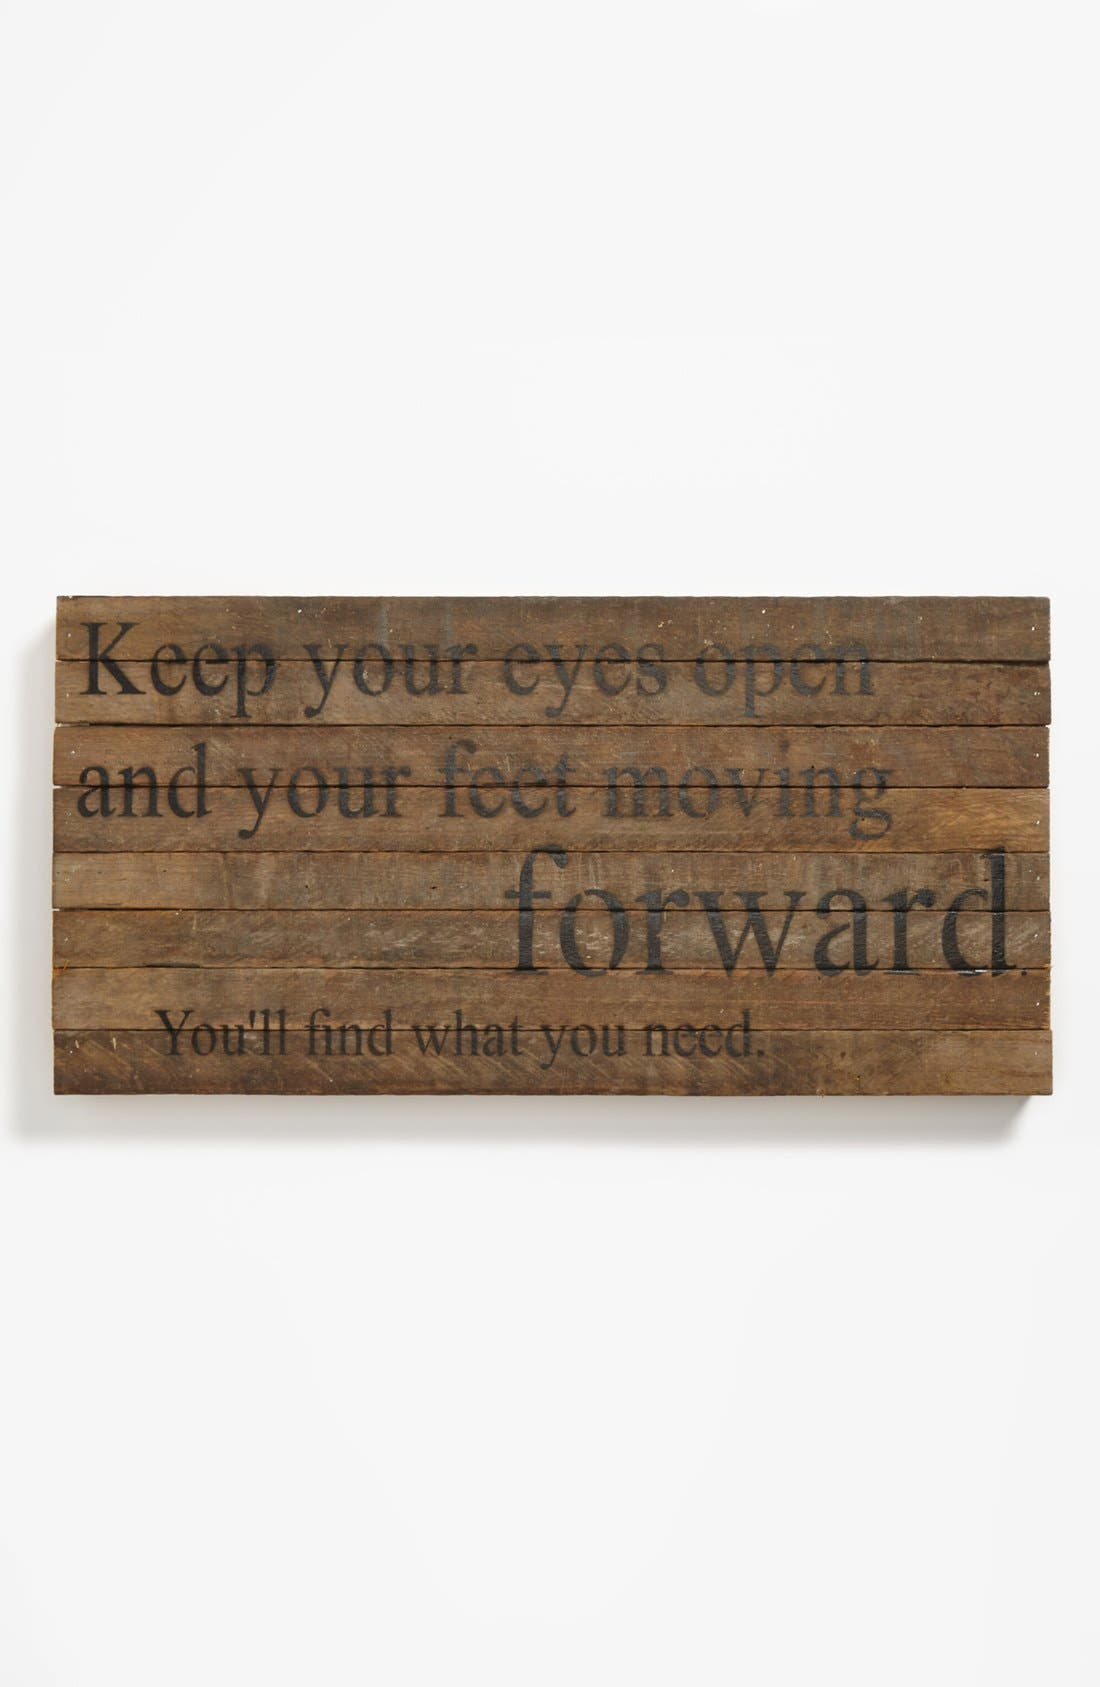 Alternate Image 1 Selected - Second Nature by Hand 'Keep Your Eyes Open' Repurposed Wood Wall Art